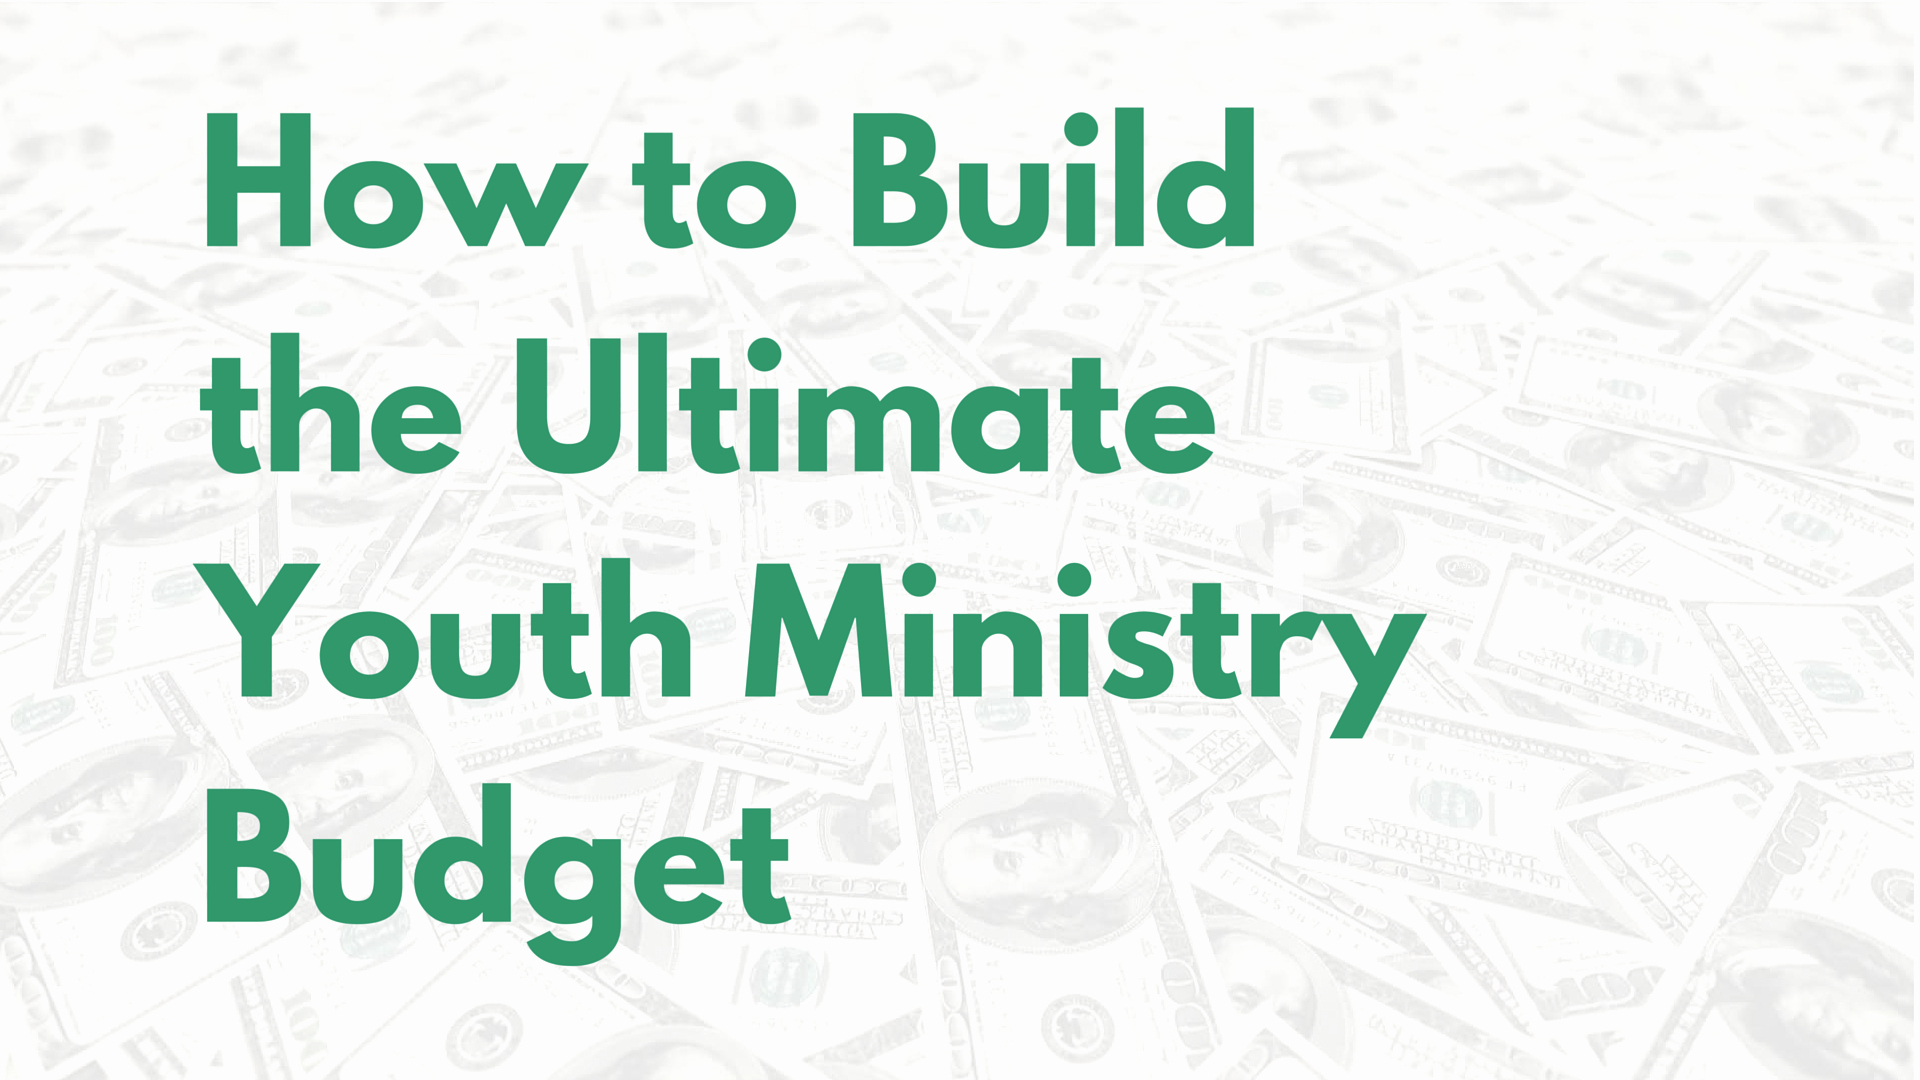 Church Ministry Budget Template Luxury Church Bud Percentage Template Youth Ministry Bud